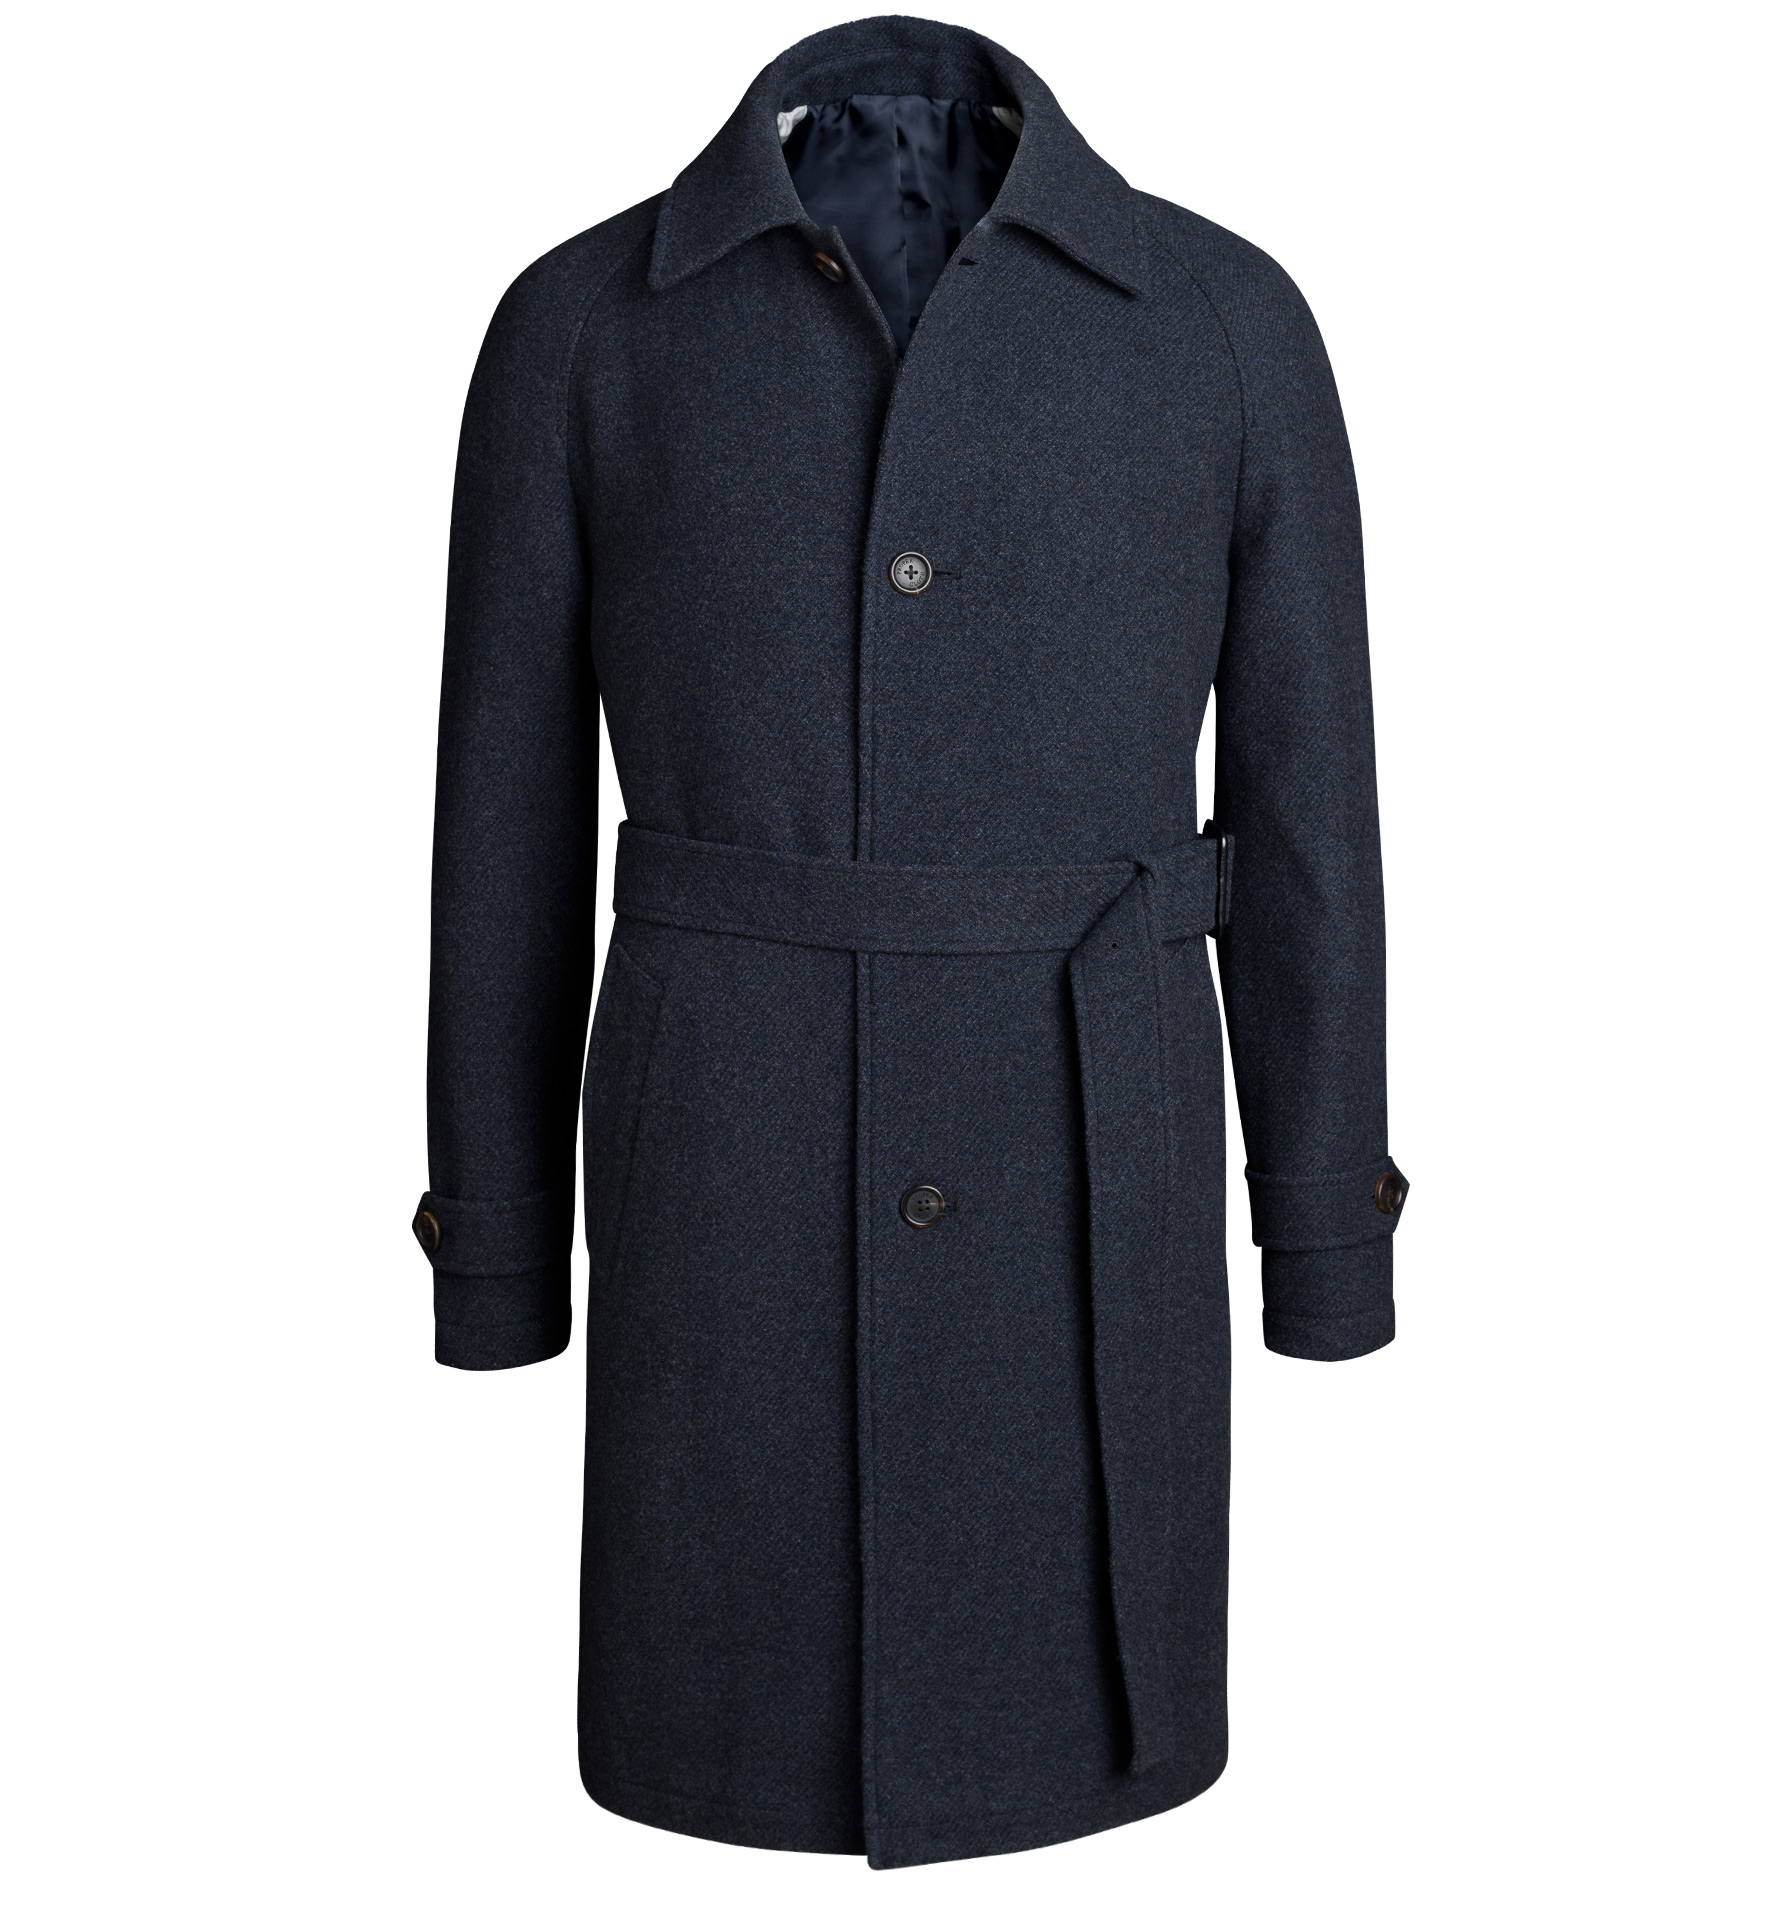 Zoom Image of Crosby Navy Wool and Cashmere Belted Coat